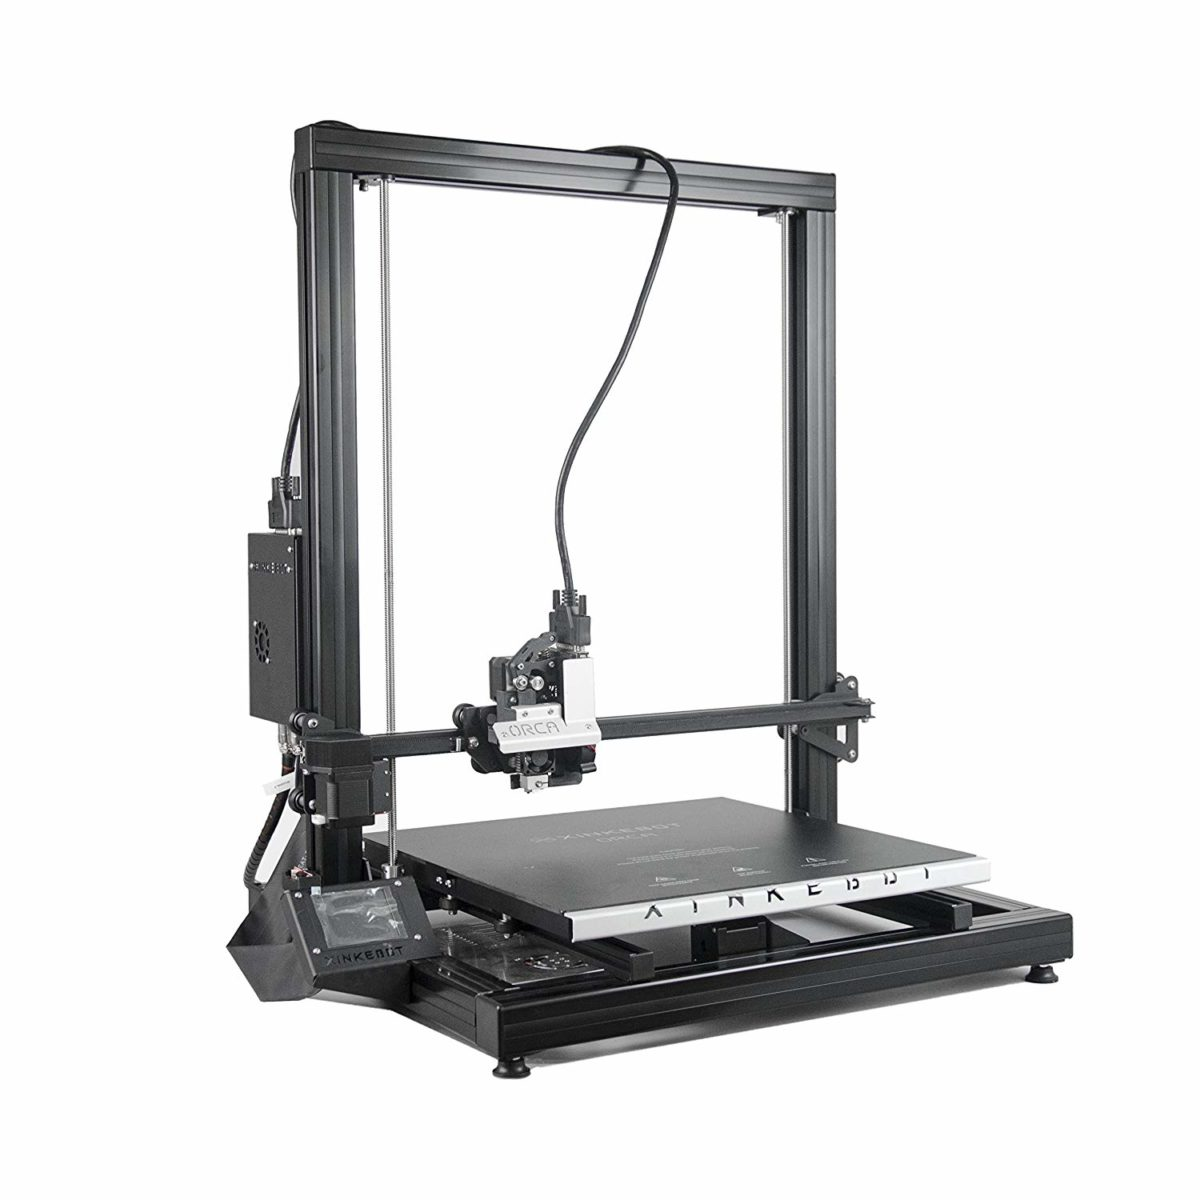 The Best Large 3D Printer